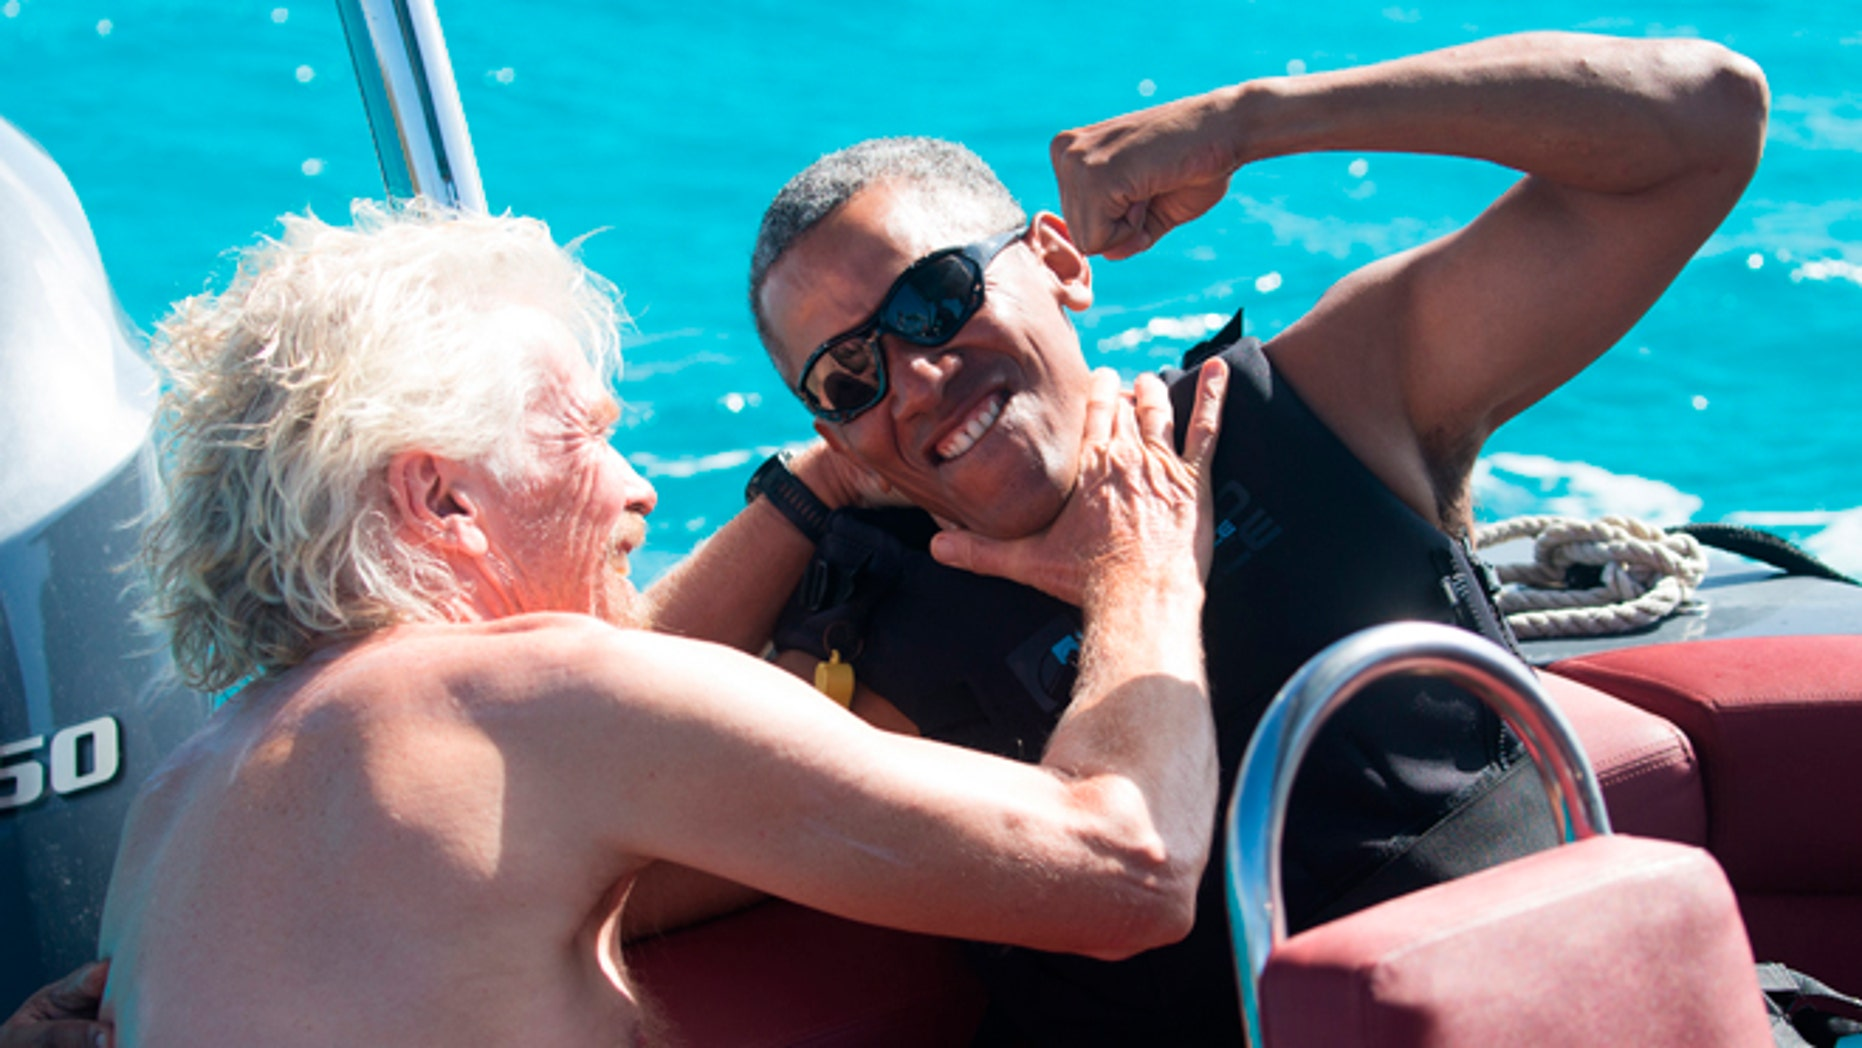 In this recent but undated photo made available by Virgin.com, former U.S President Barack Obama, jokes with Richard Branson, founder of the Virgin Group, during his stay on Moskito Island, British Virgin Islands.